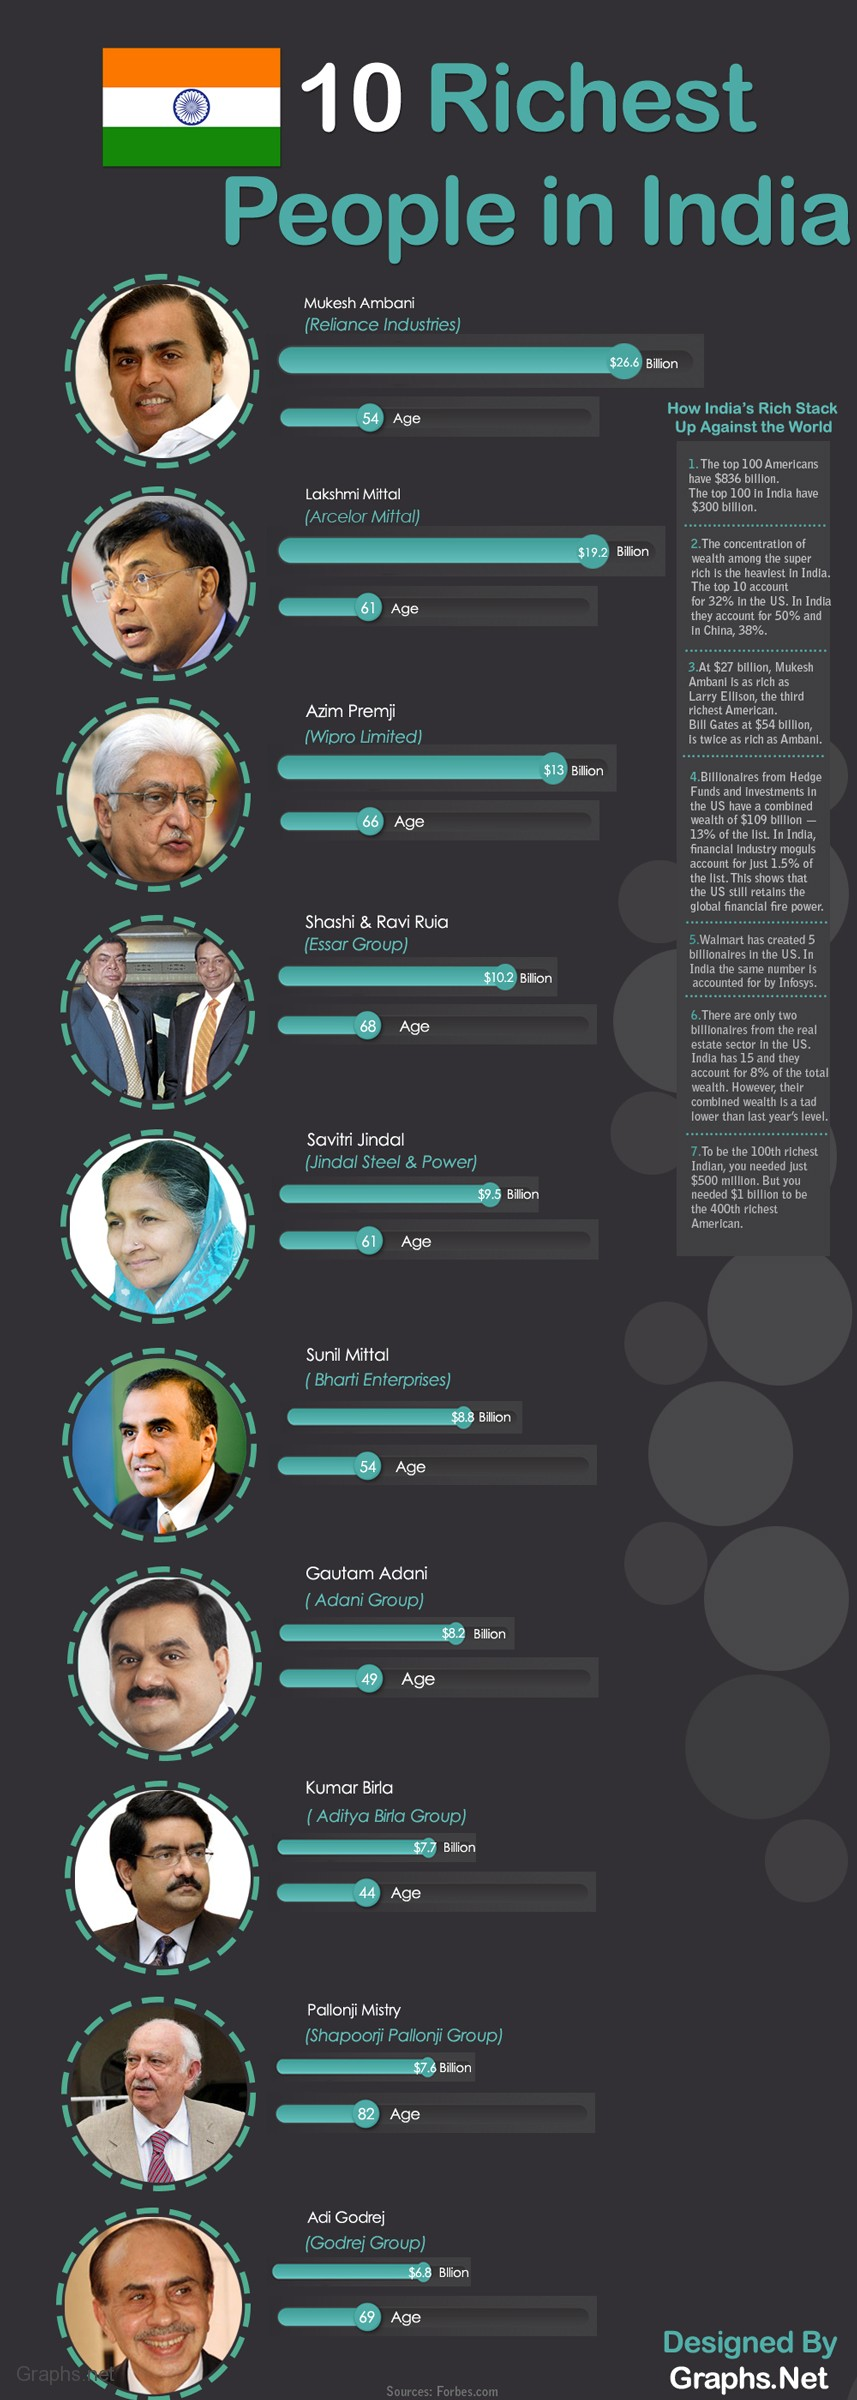 Richest people in India